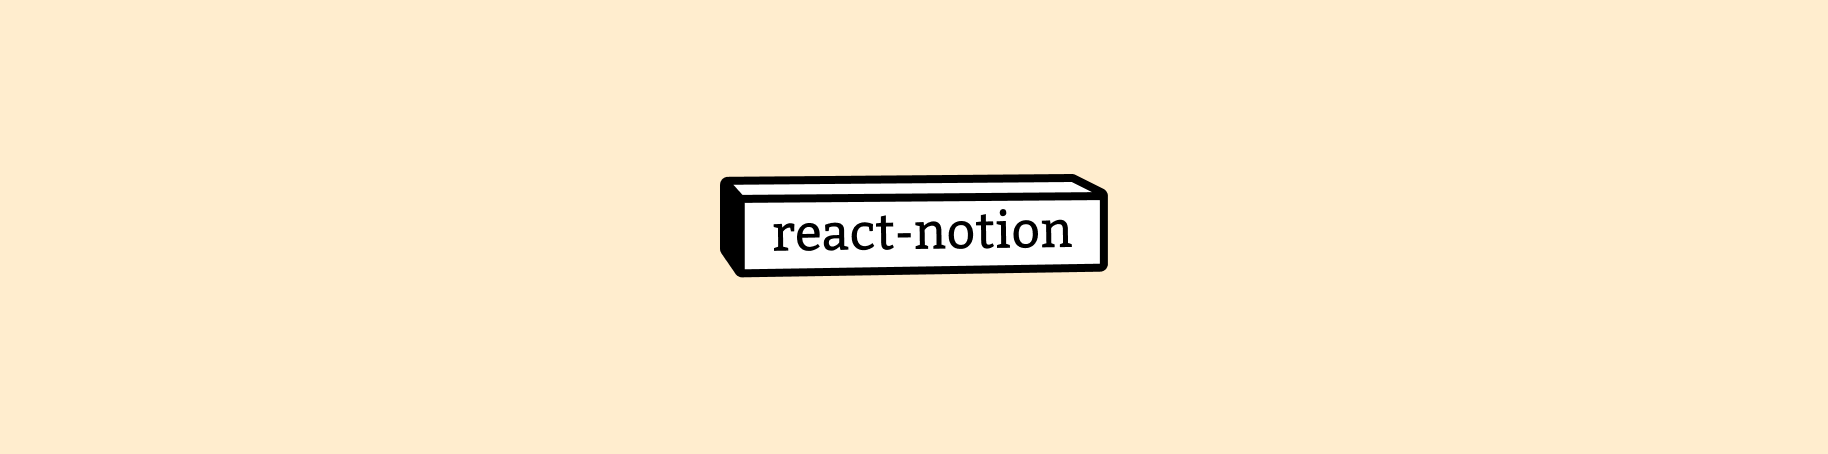 react-notion